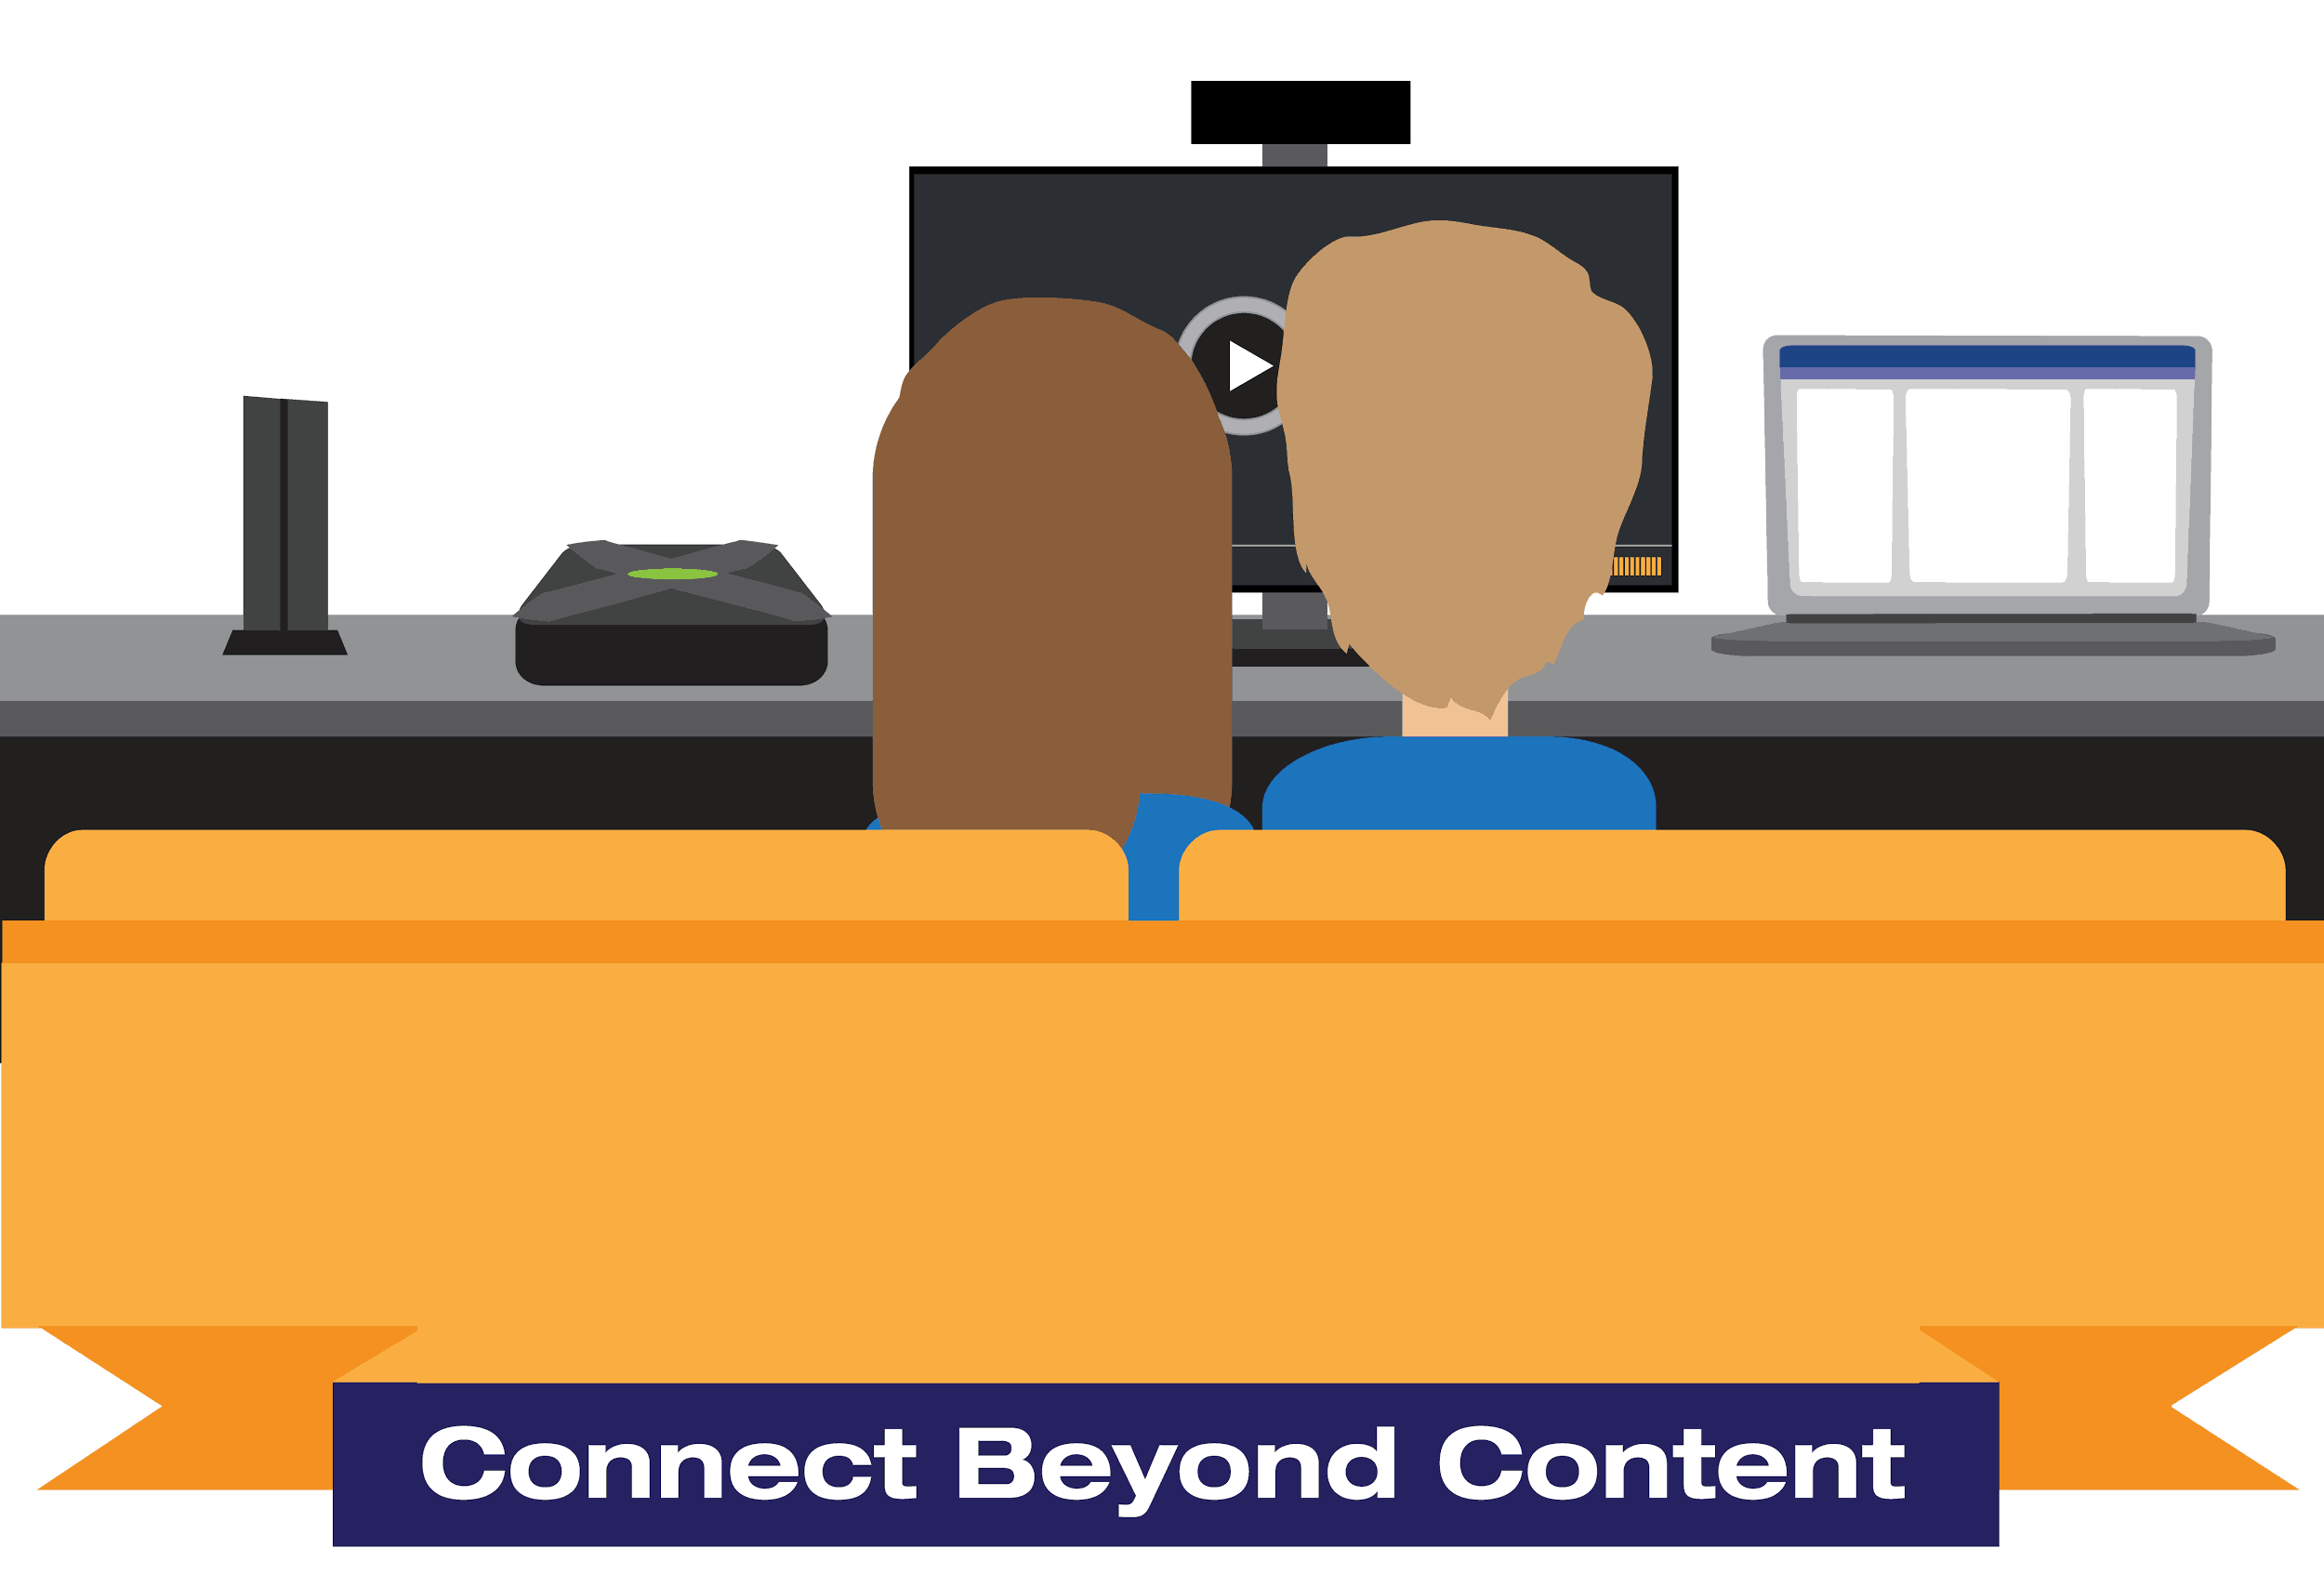 Connect Beyond content - Reasons Why You Need VPN For Torrenting